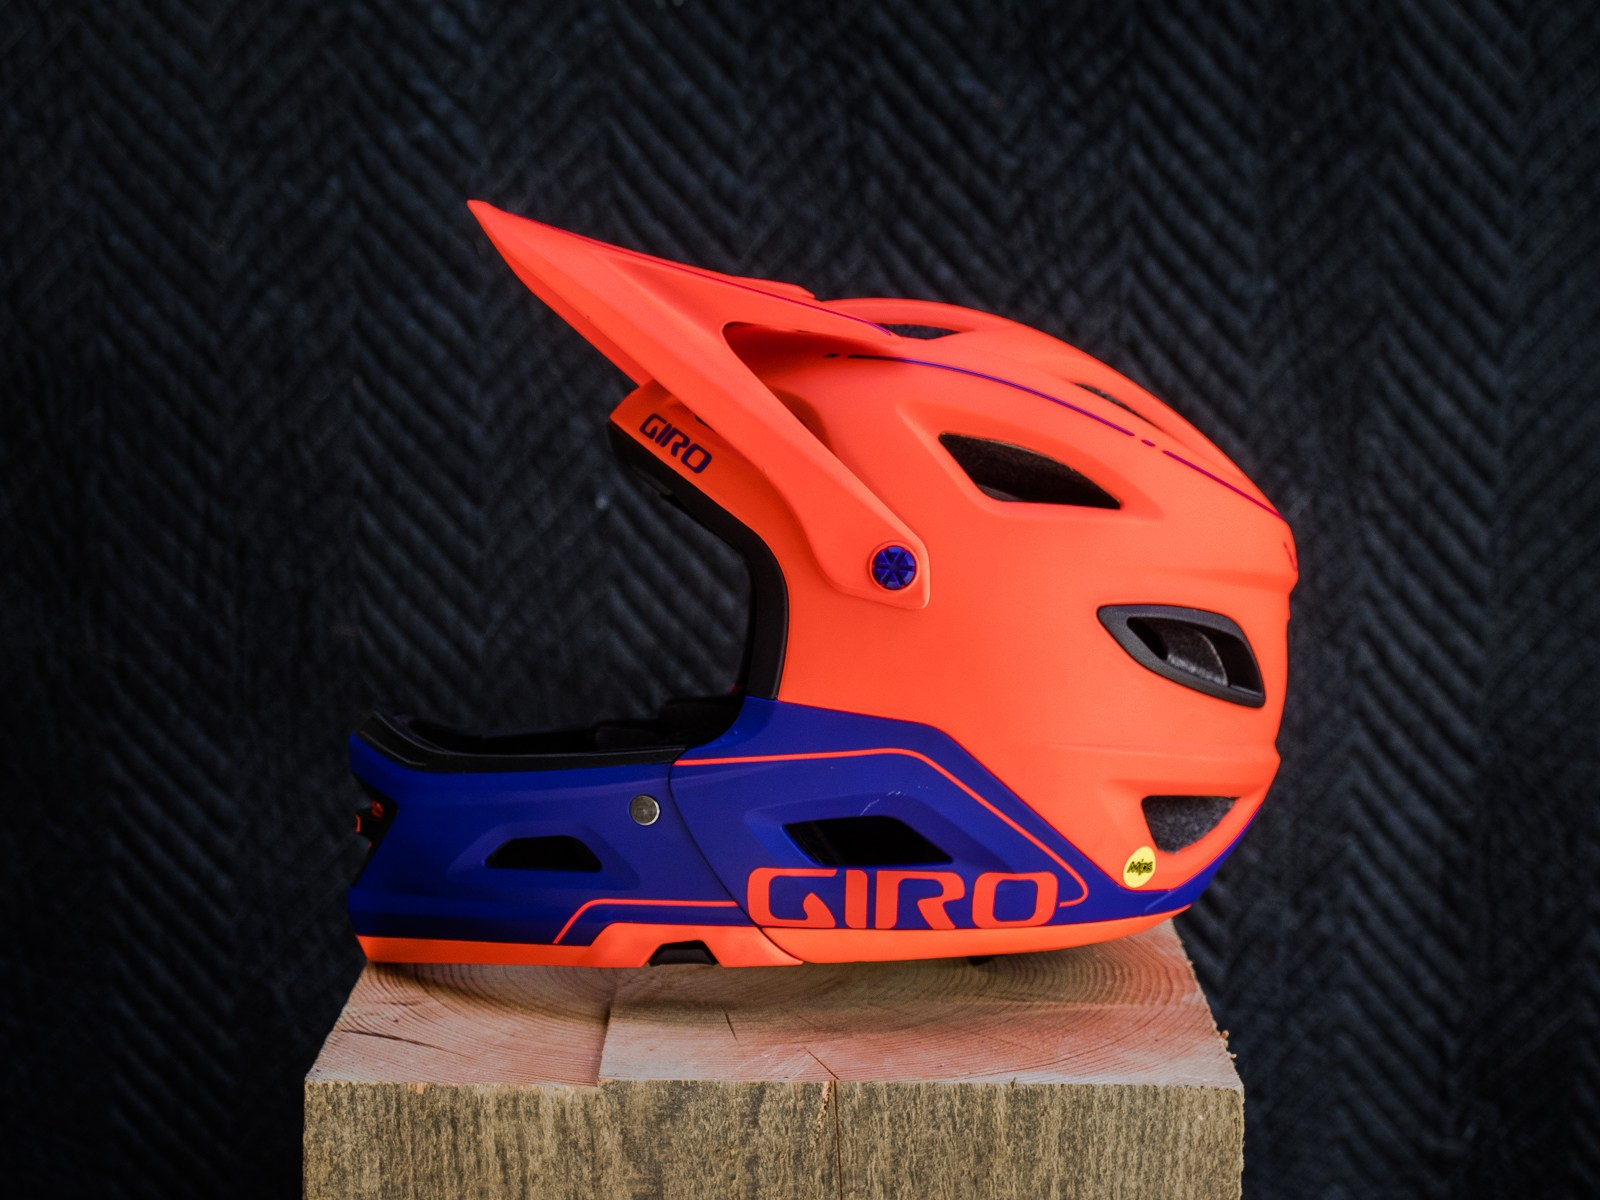 Giro Switchblade - side